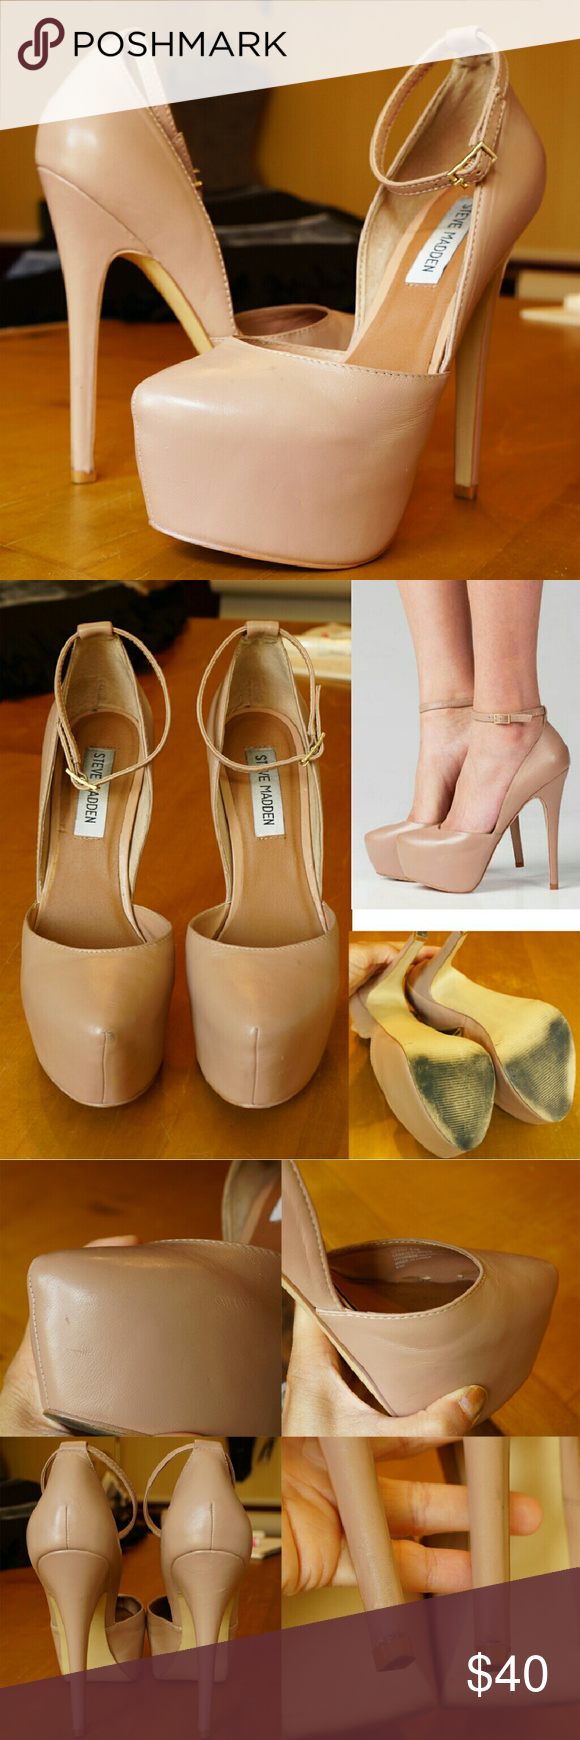 ea6491fe6 Sale! Steve Madden Deeny d'Orsay pump nude blush Size 5.5 but fits ...